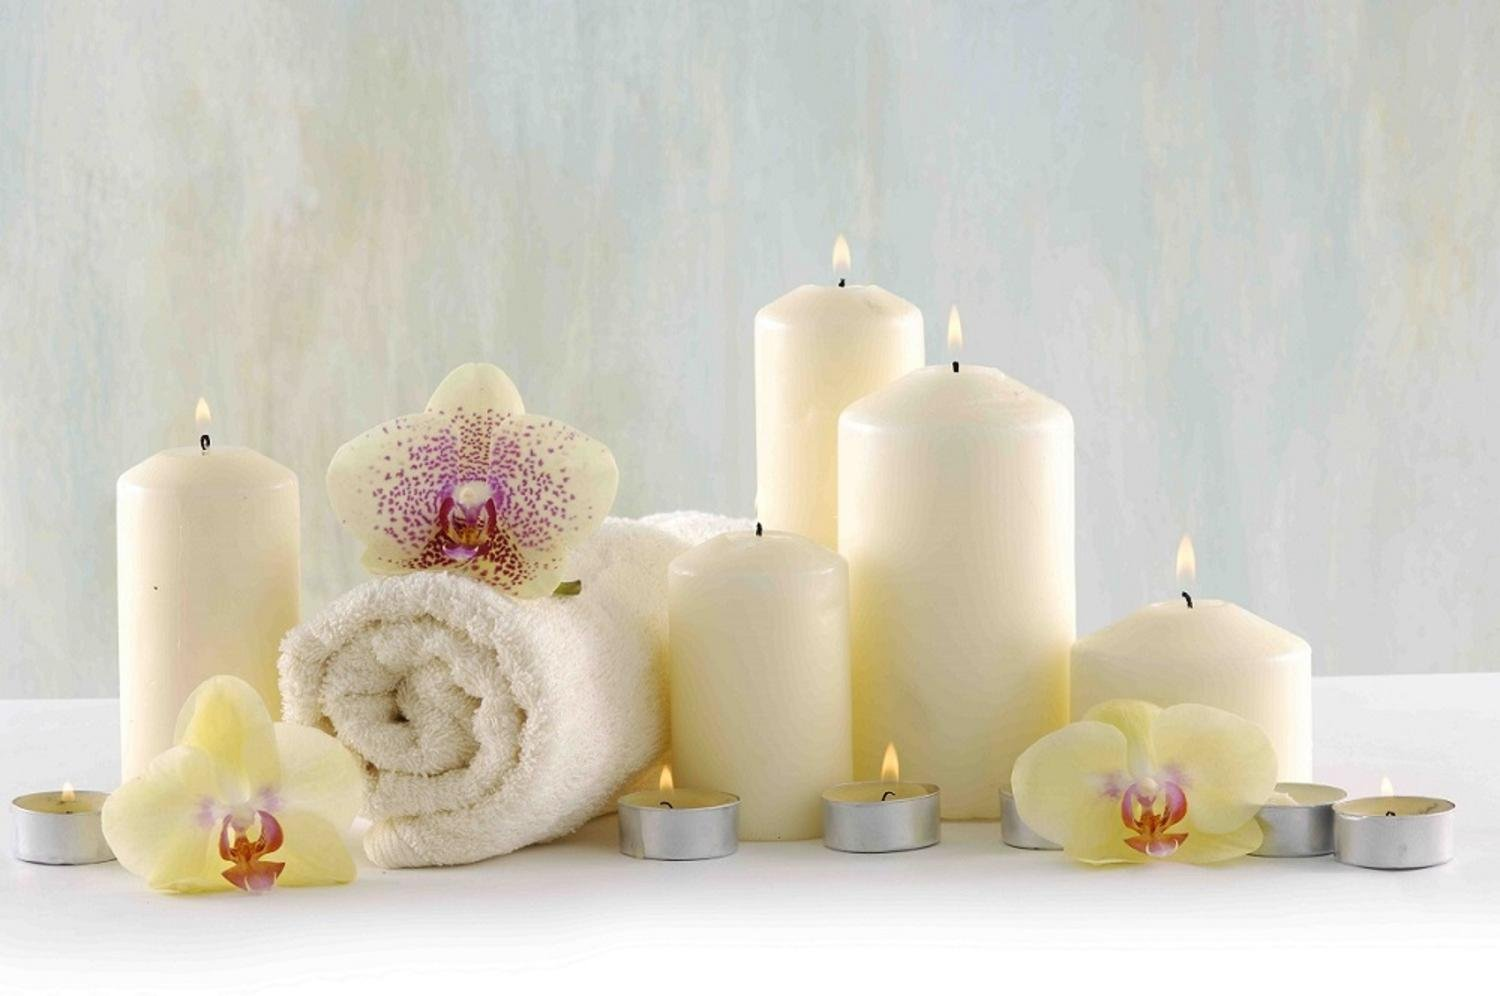 Northlight LED Lighted Candle Orchid Spa Inspired Canvas Wall Art 11.75'' x 15.75''